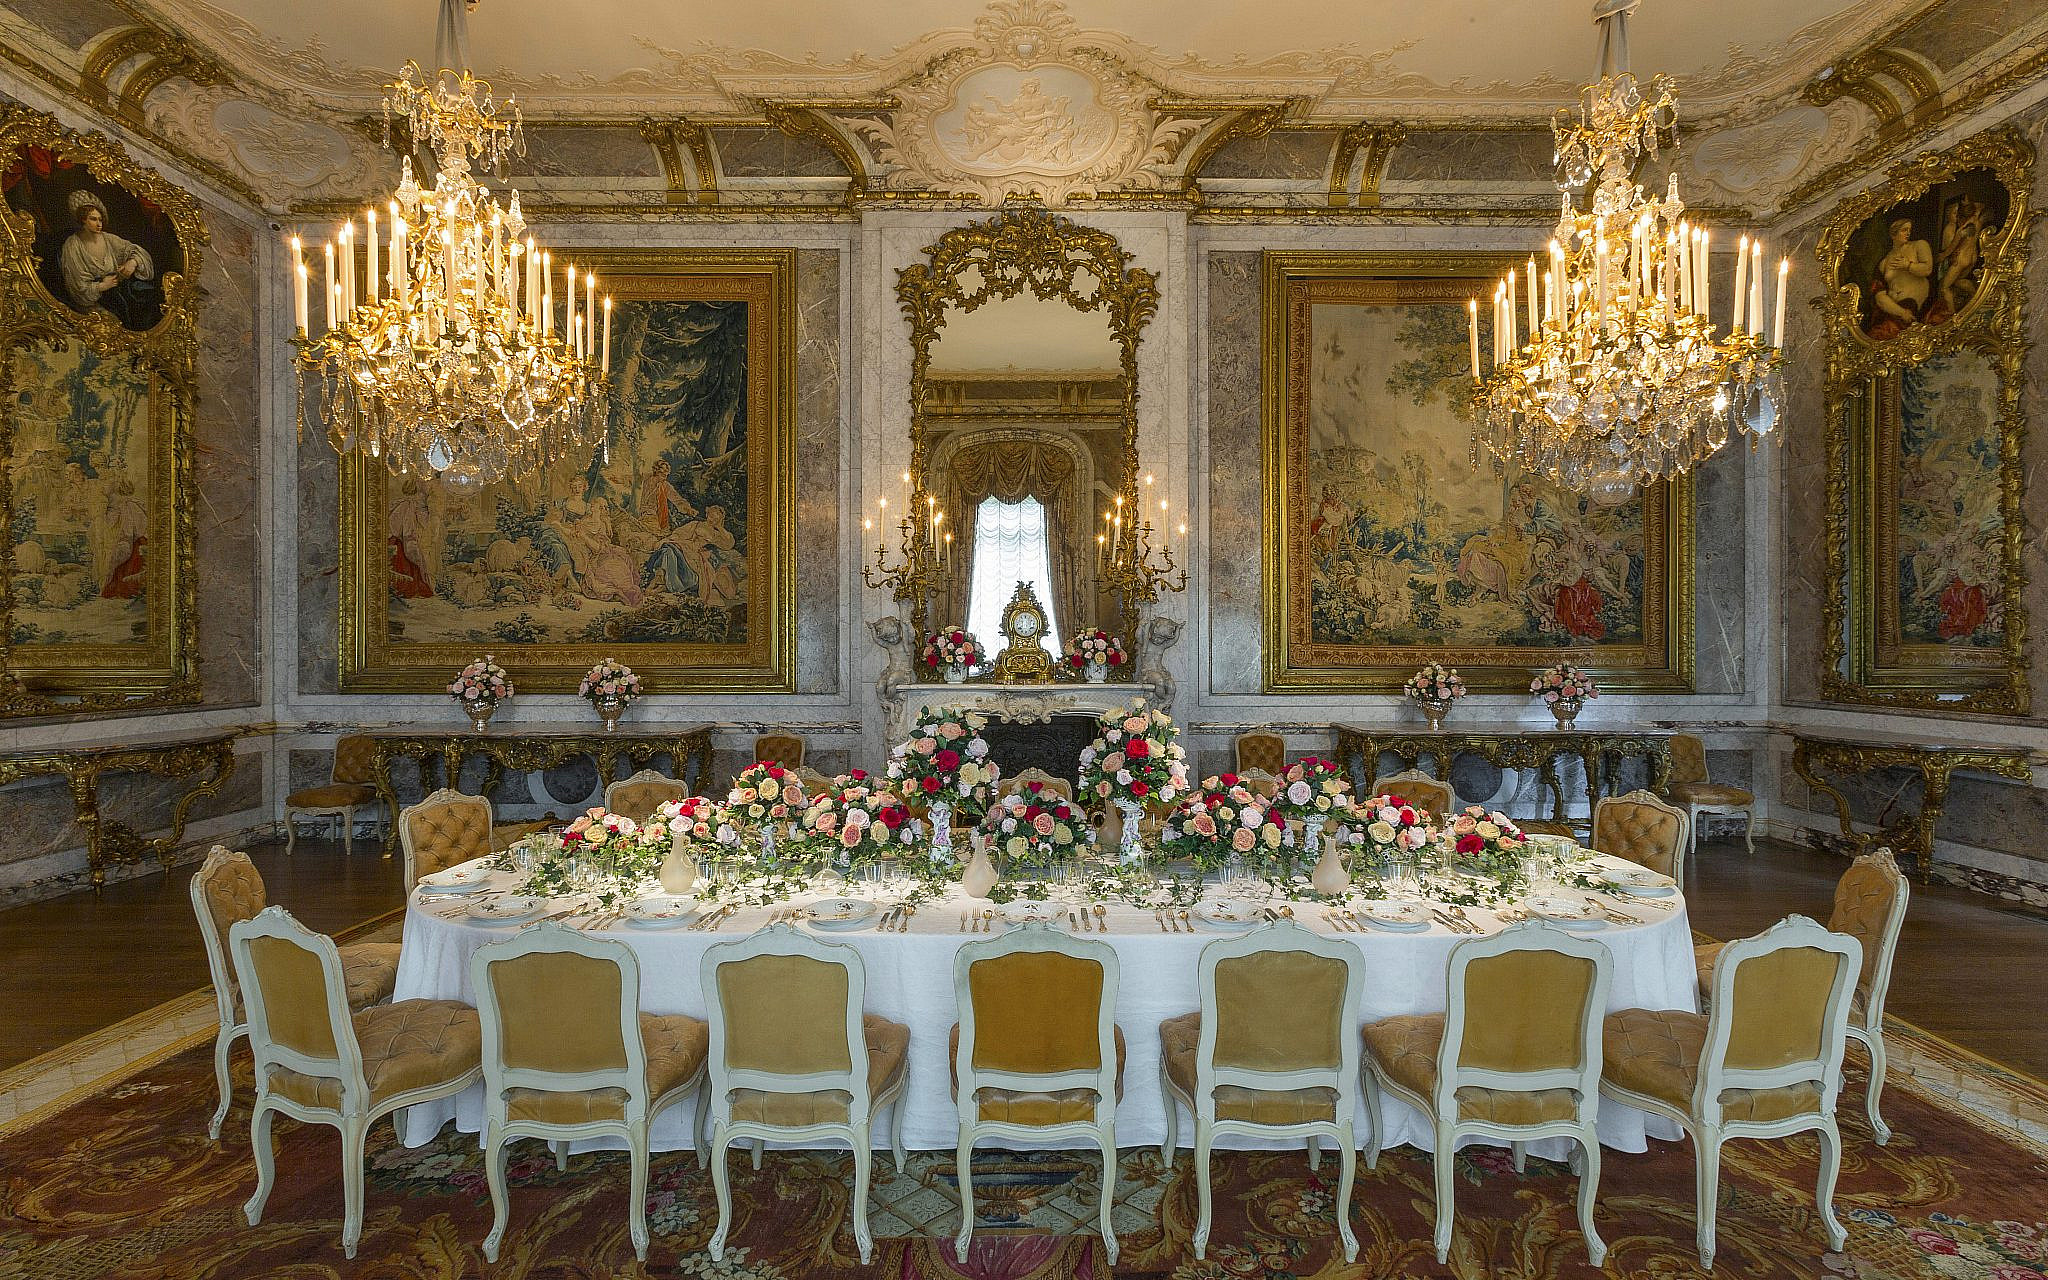 The Waddesdon Manor dining room. (Chris Lacey (c) National Trust Waddesdon Manor)